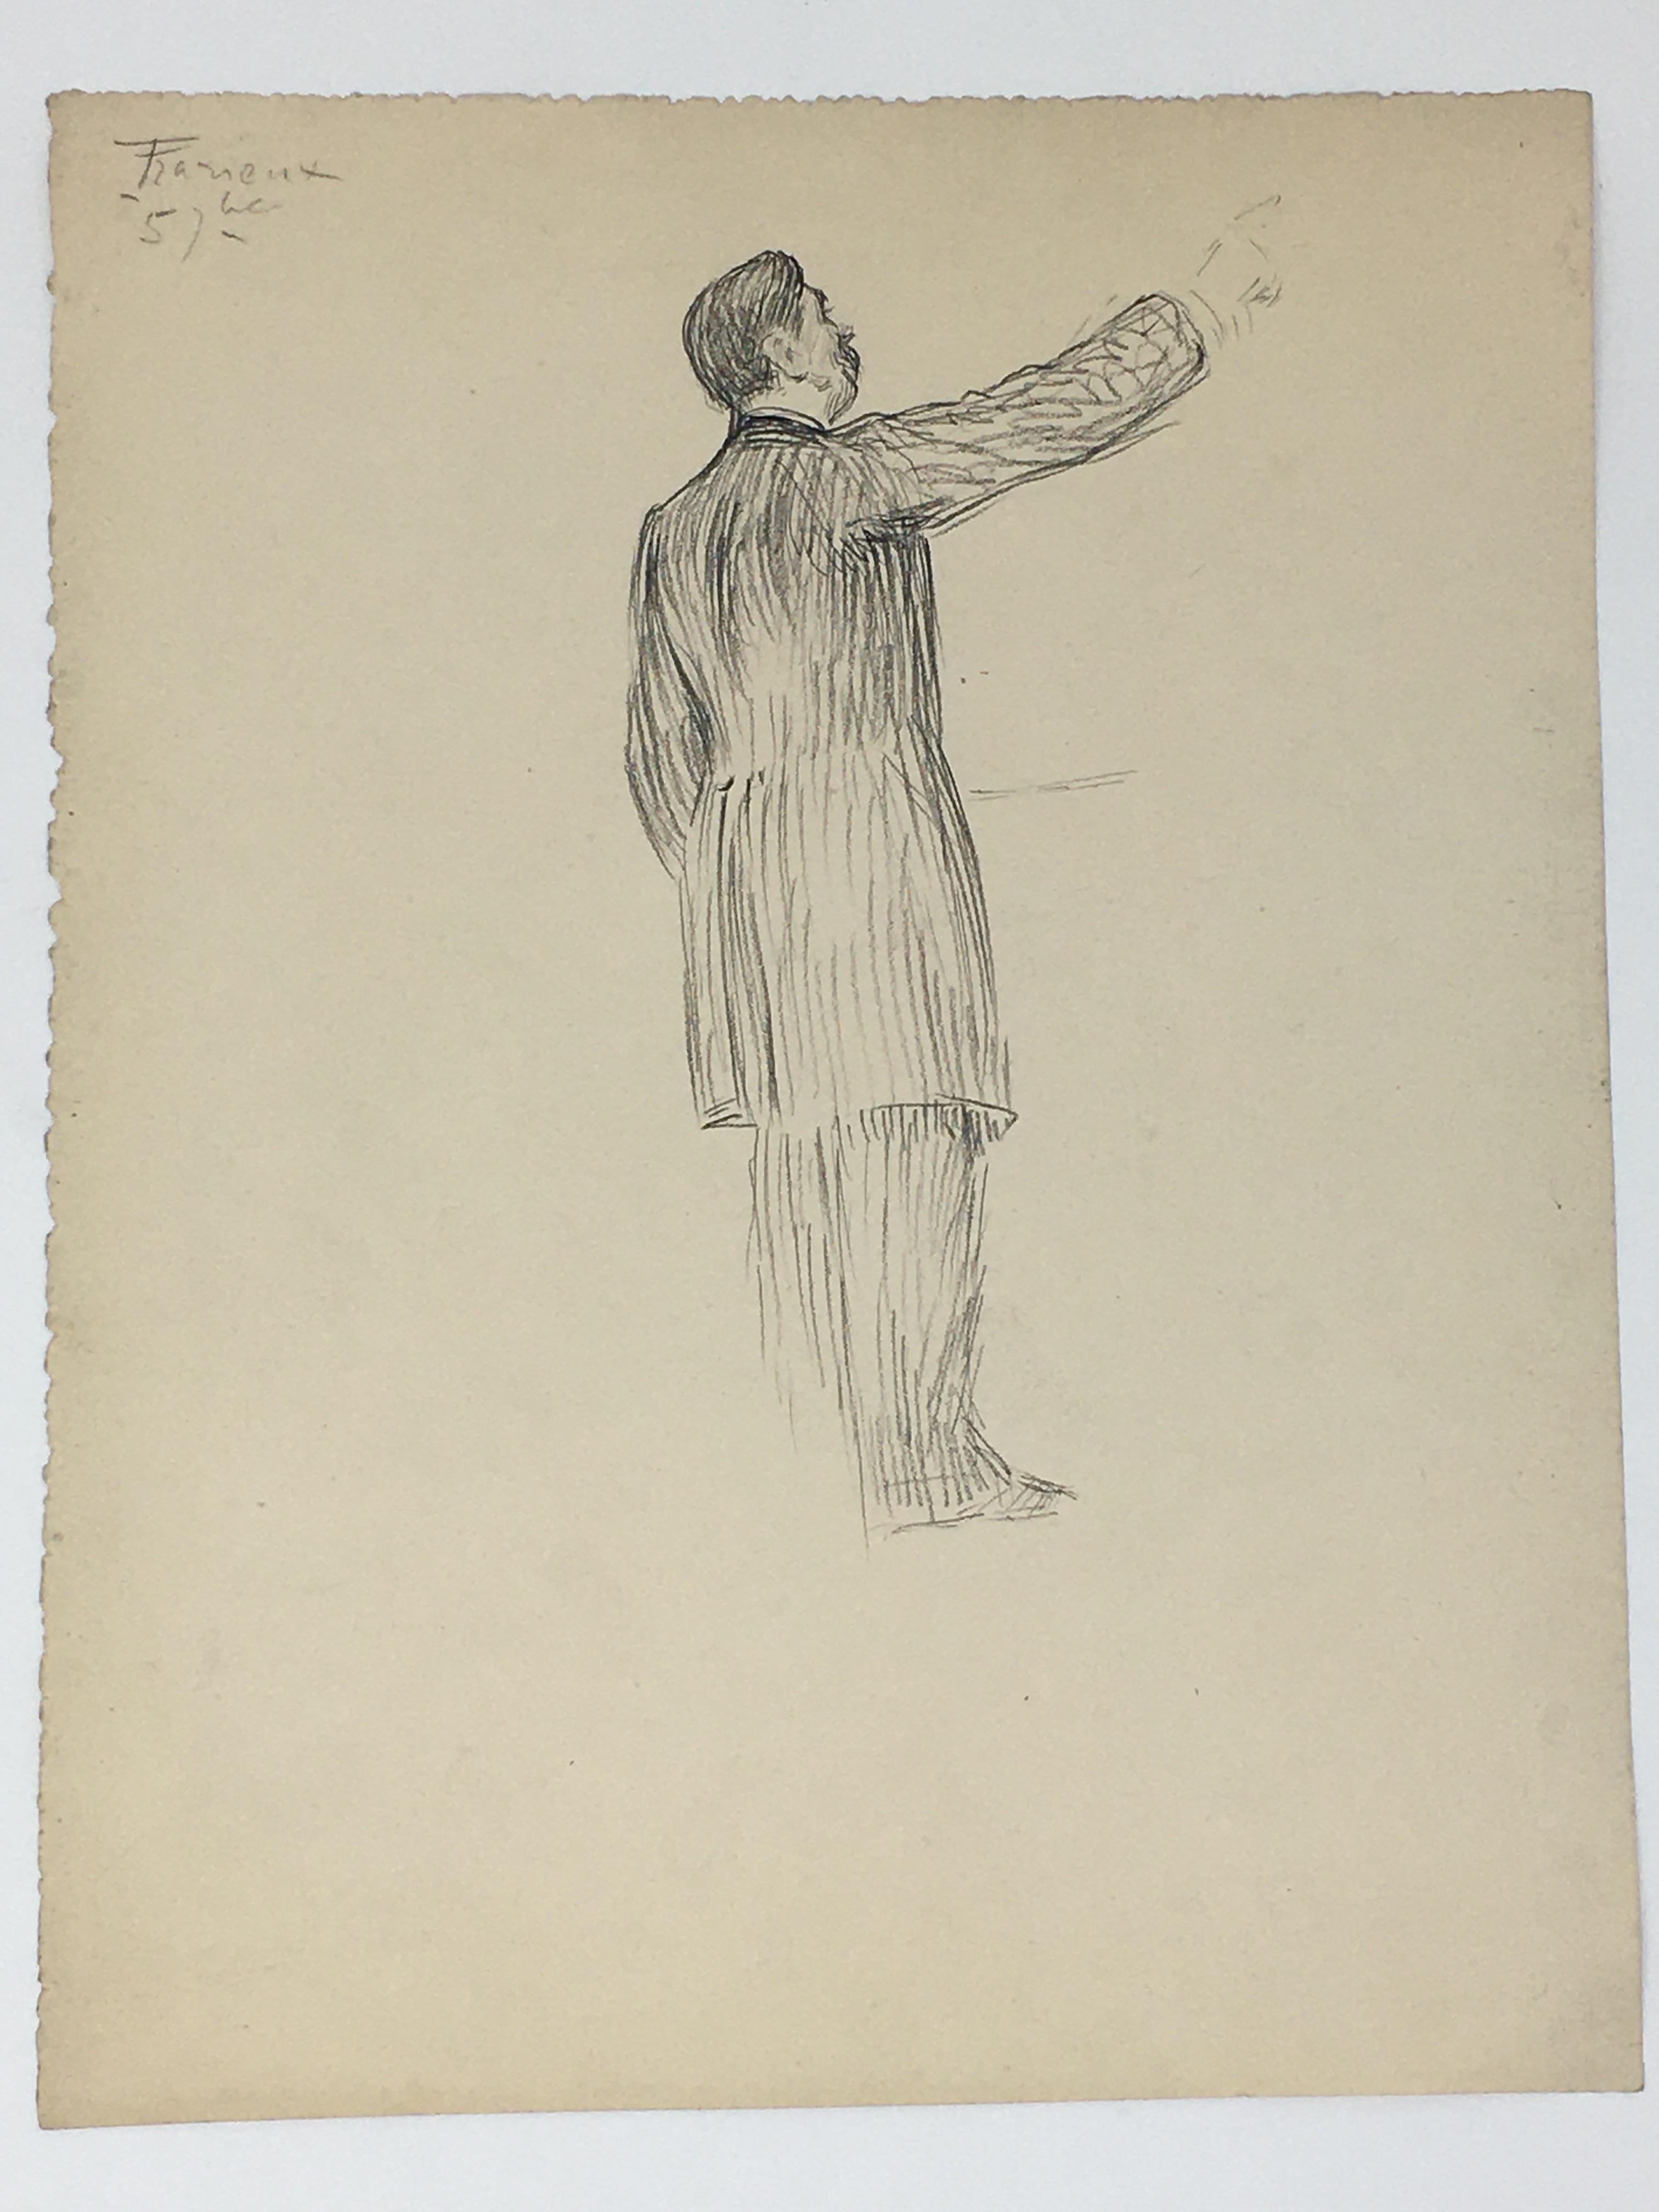 J'Accuse Newspaper, Emile Zola Quote, Signed Dreyfus Portrait, Rare Trial Drawings & Schwartzkoppen - Image 71 of 74